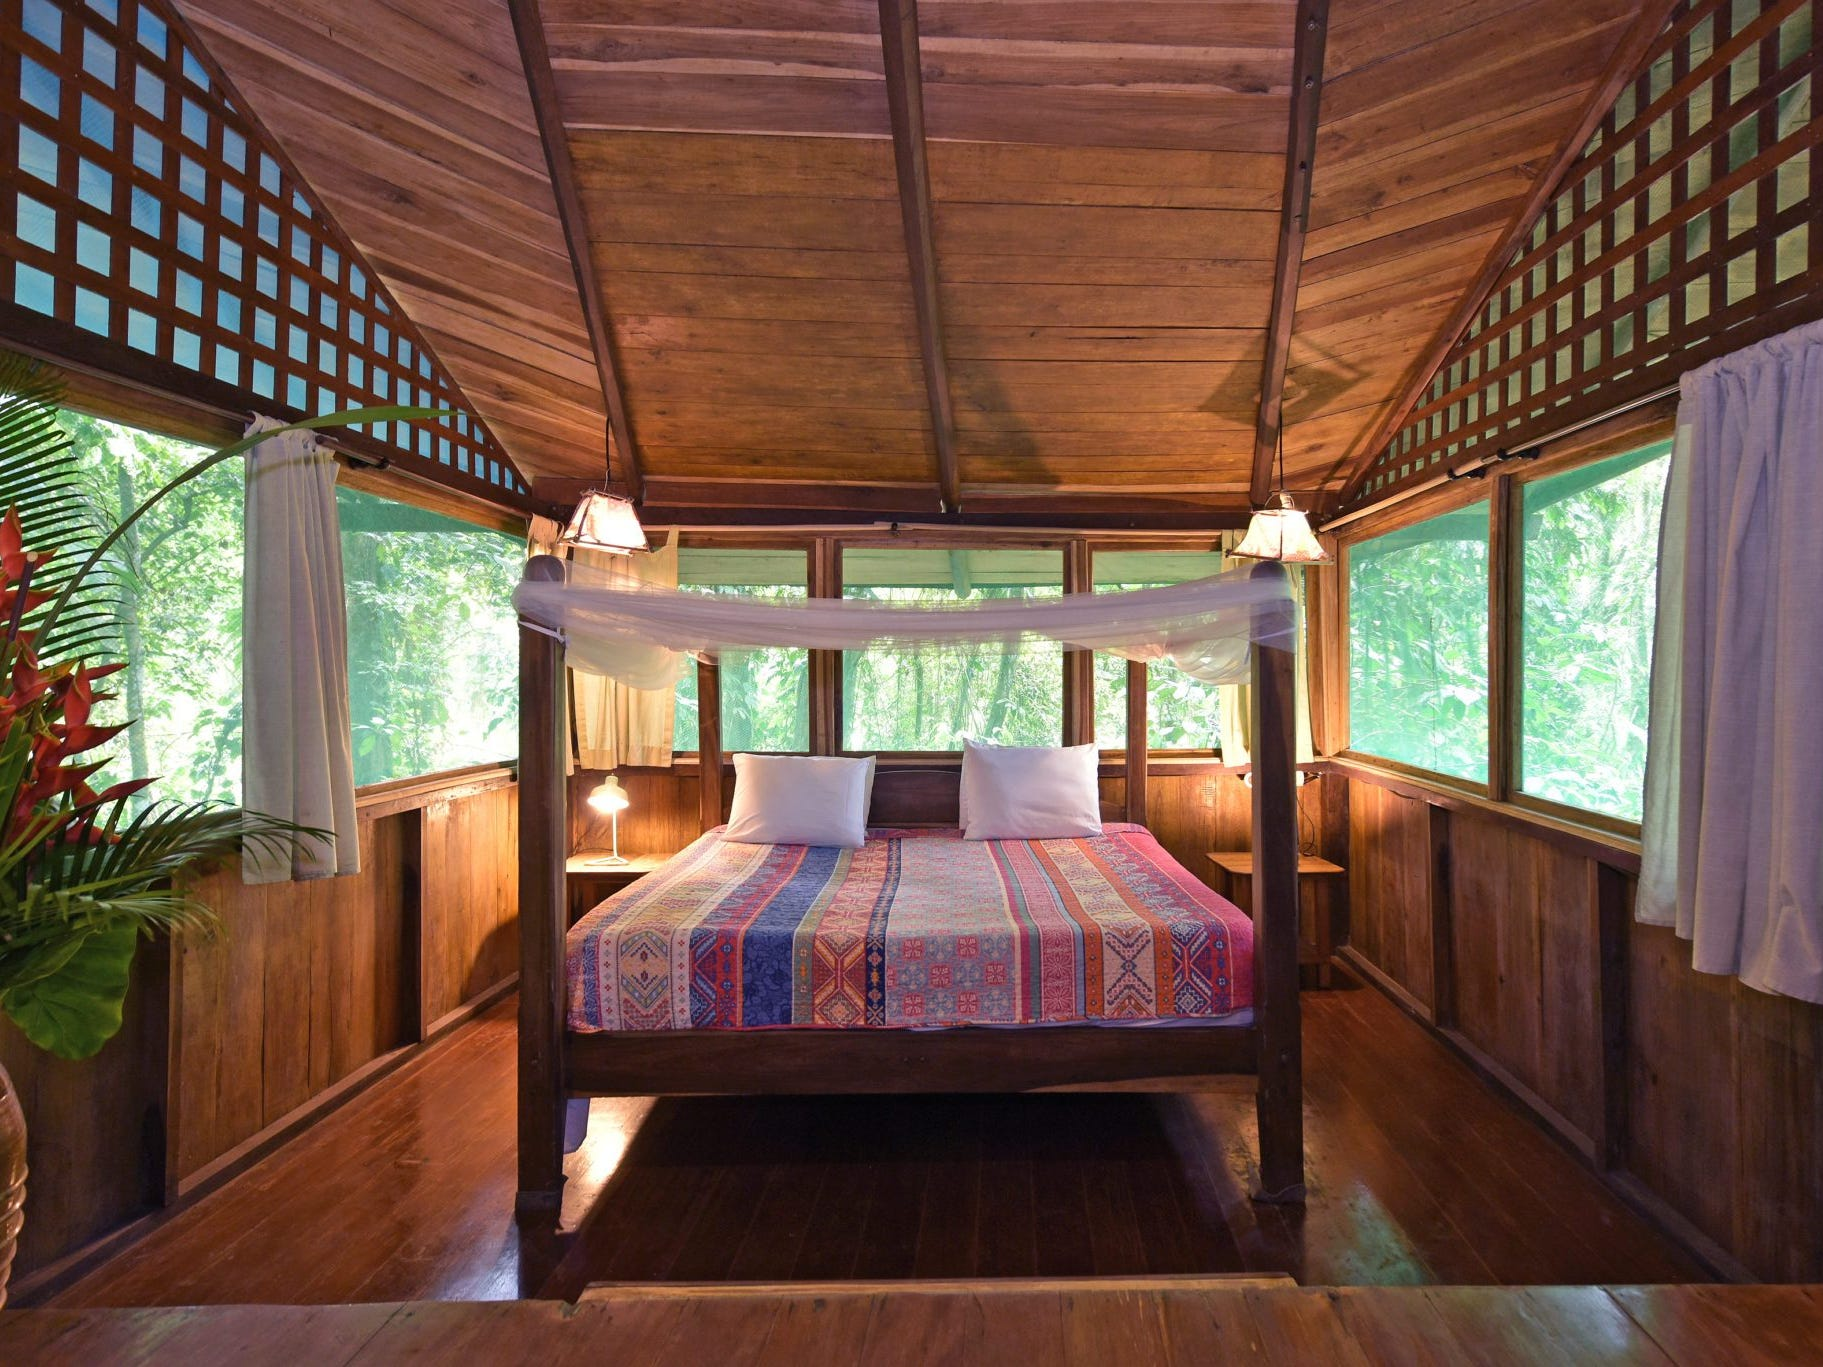 Rates at Costa Rica Tree House Lodge start as low as $200 per night for two guests.